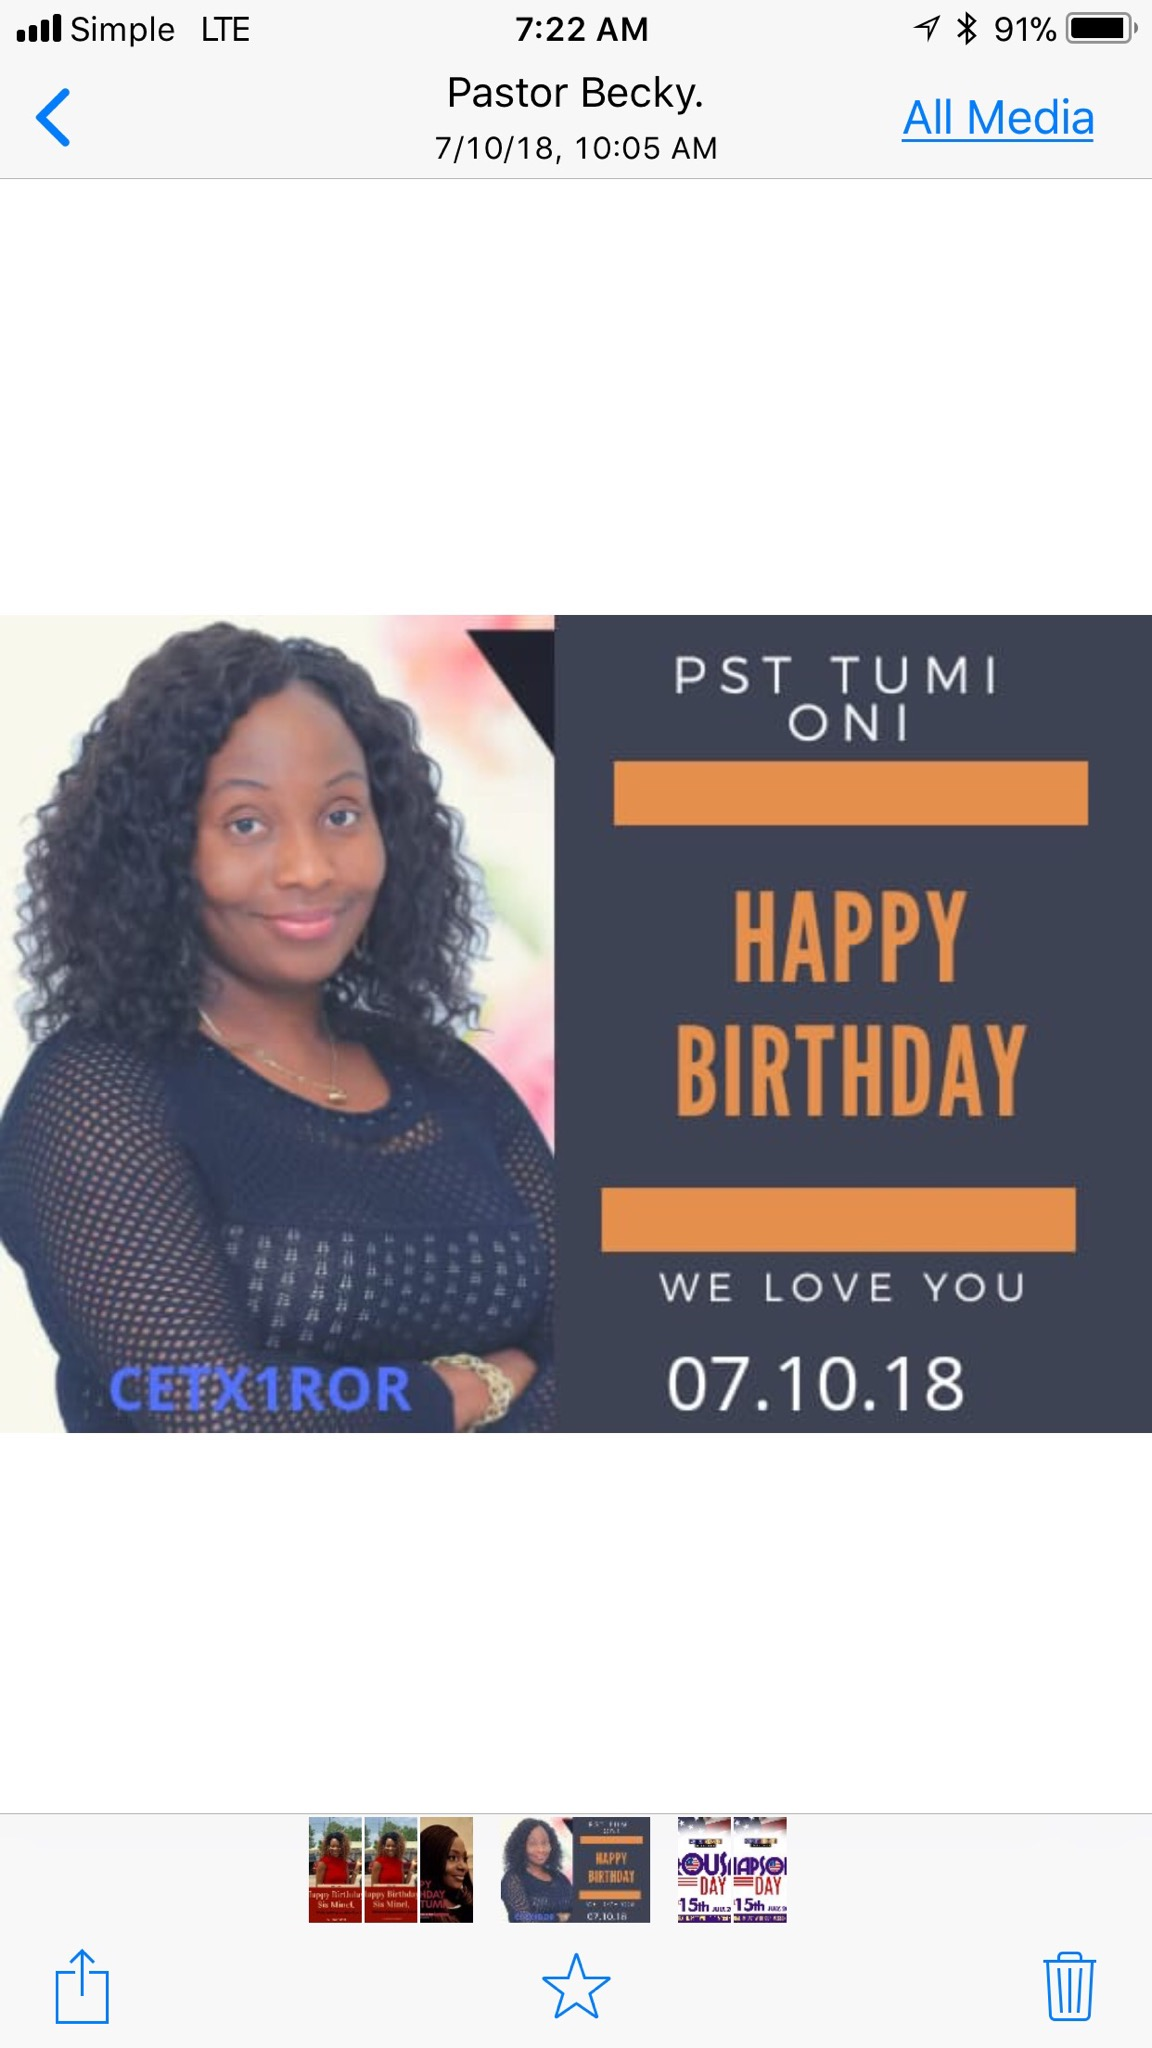 Still celebrating our awesome Pastor